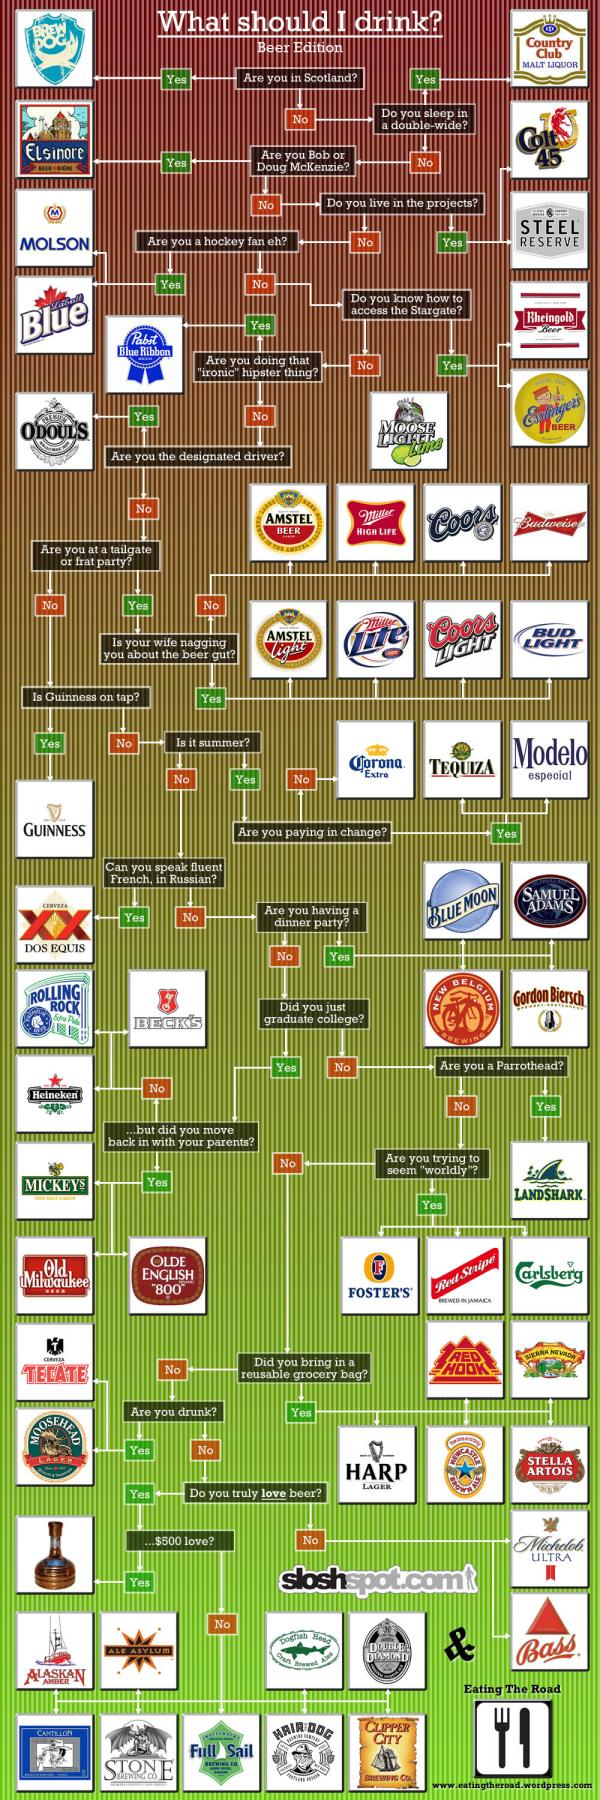 Beer Edition - What Should I Drink?